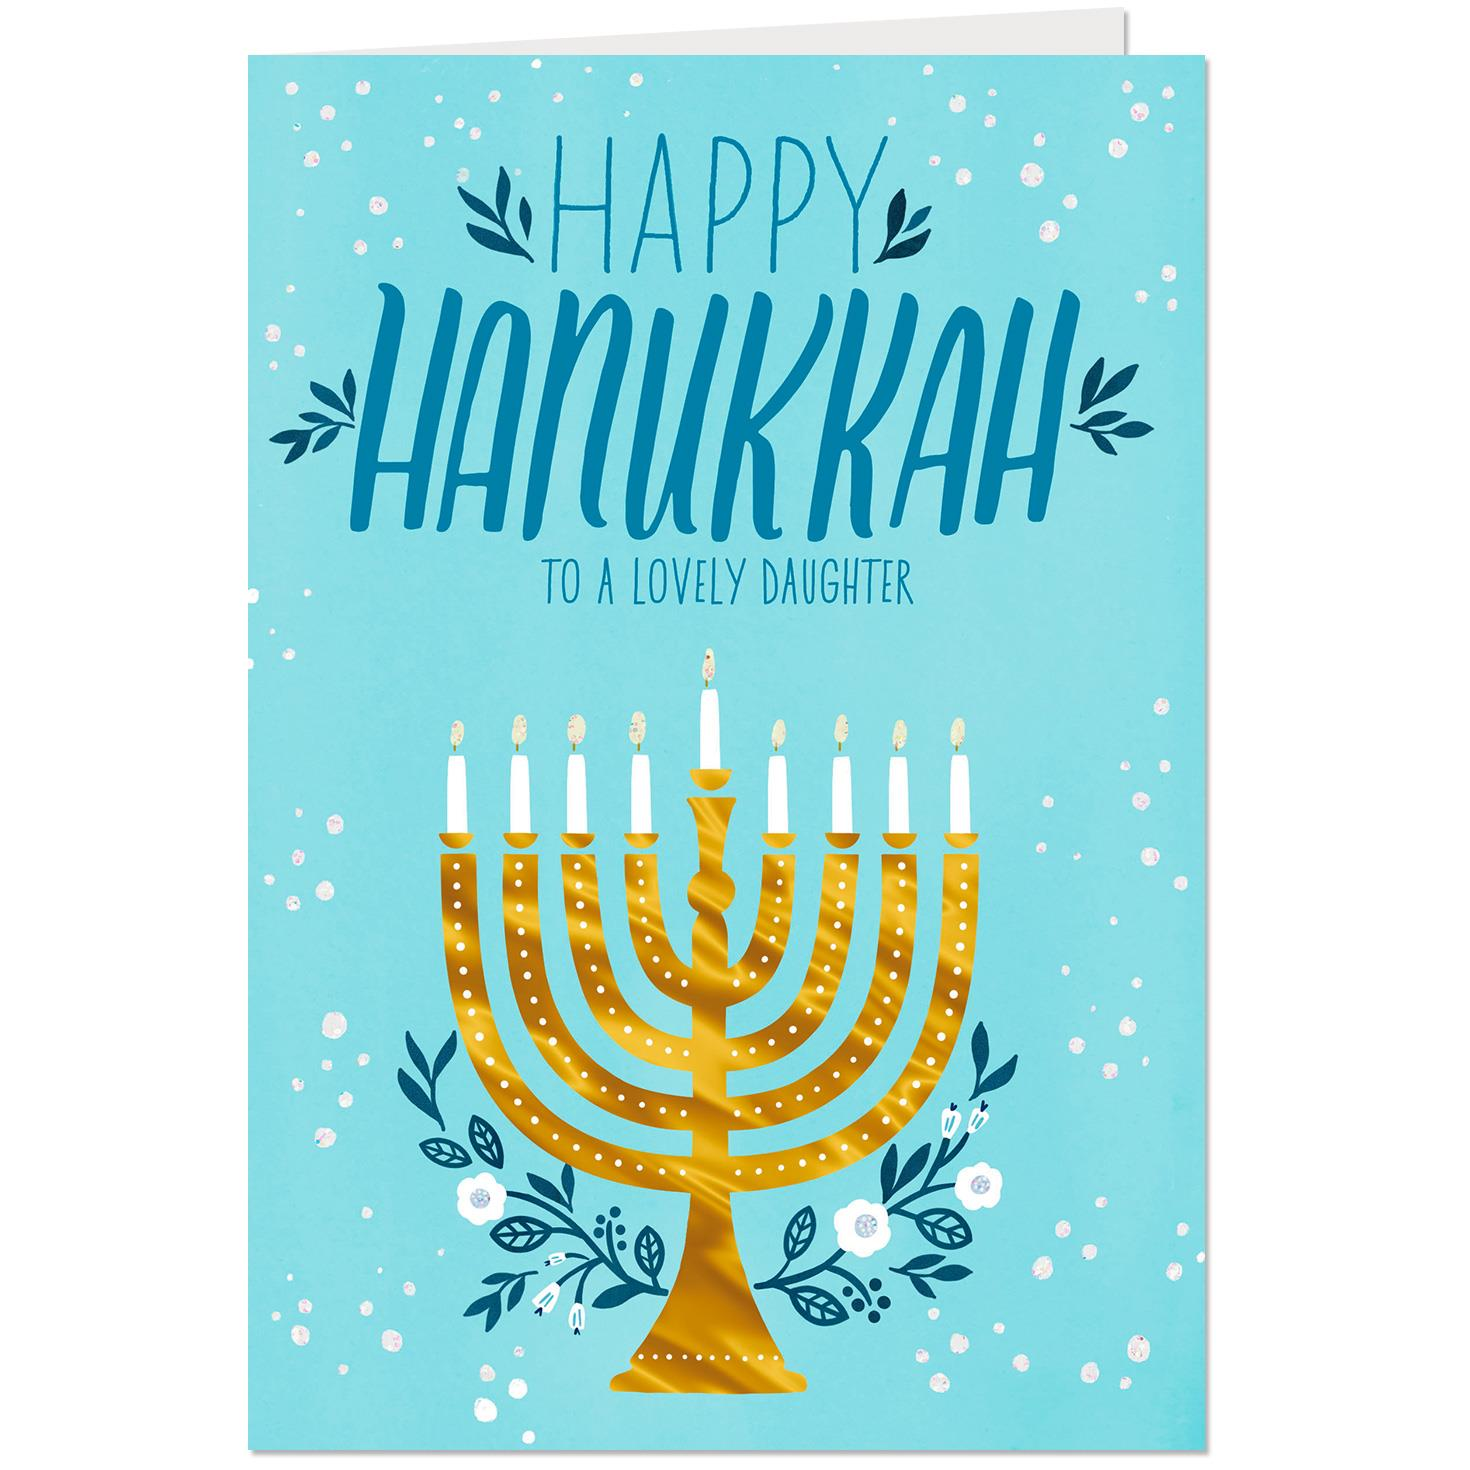 You light our life hanukkah card for daughter greeting cards you light our life hanukkah card for daughter m4hsunfo